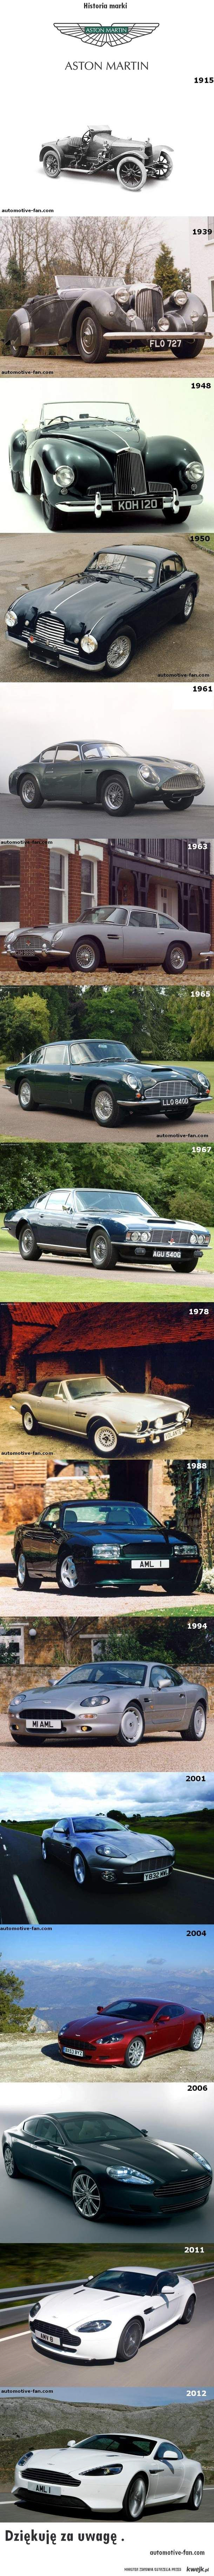 The history of Aston Martin: Das Autos, Astonmartin, Classic Cars, Classic Motorcycles, Sexual Cars, Aston Motorbikes, Exotic Cars, Dreams Cars, Aston Martin